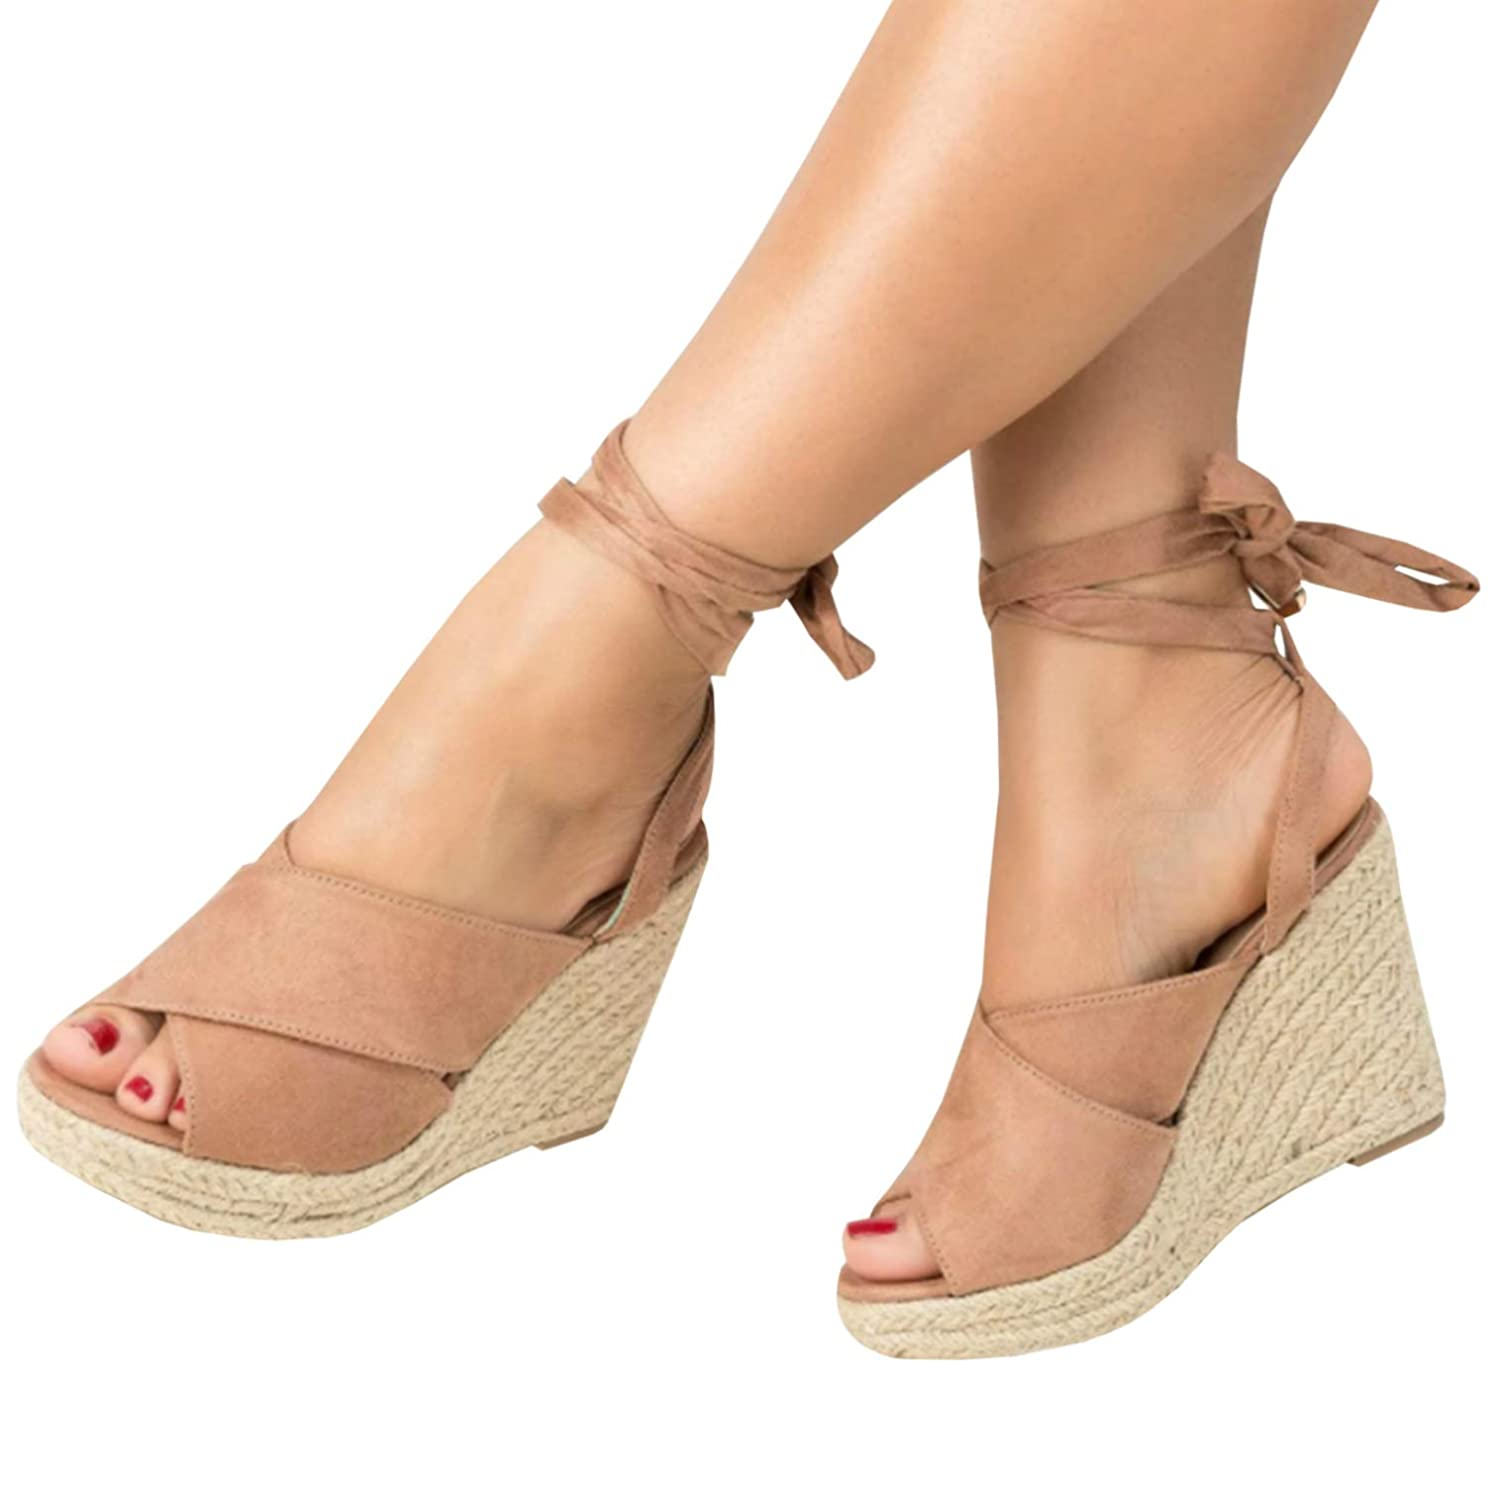 016f1f05ad3 Ermonn Womens Lace Up Wedge Sandals Espadrille Peep Toe Tie Up Strappy Mid  Heel Braided Sandals